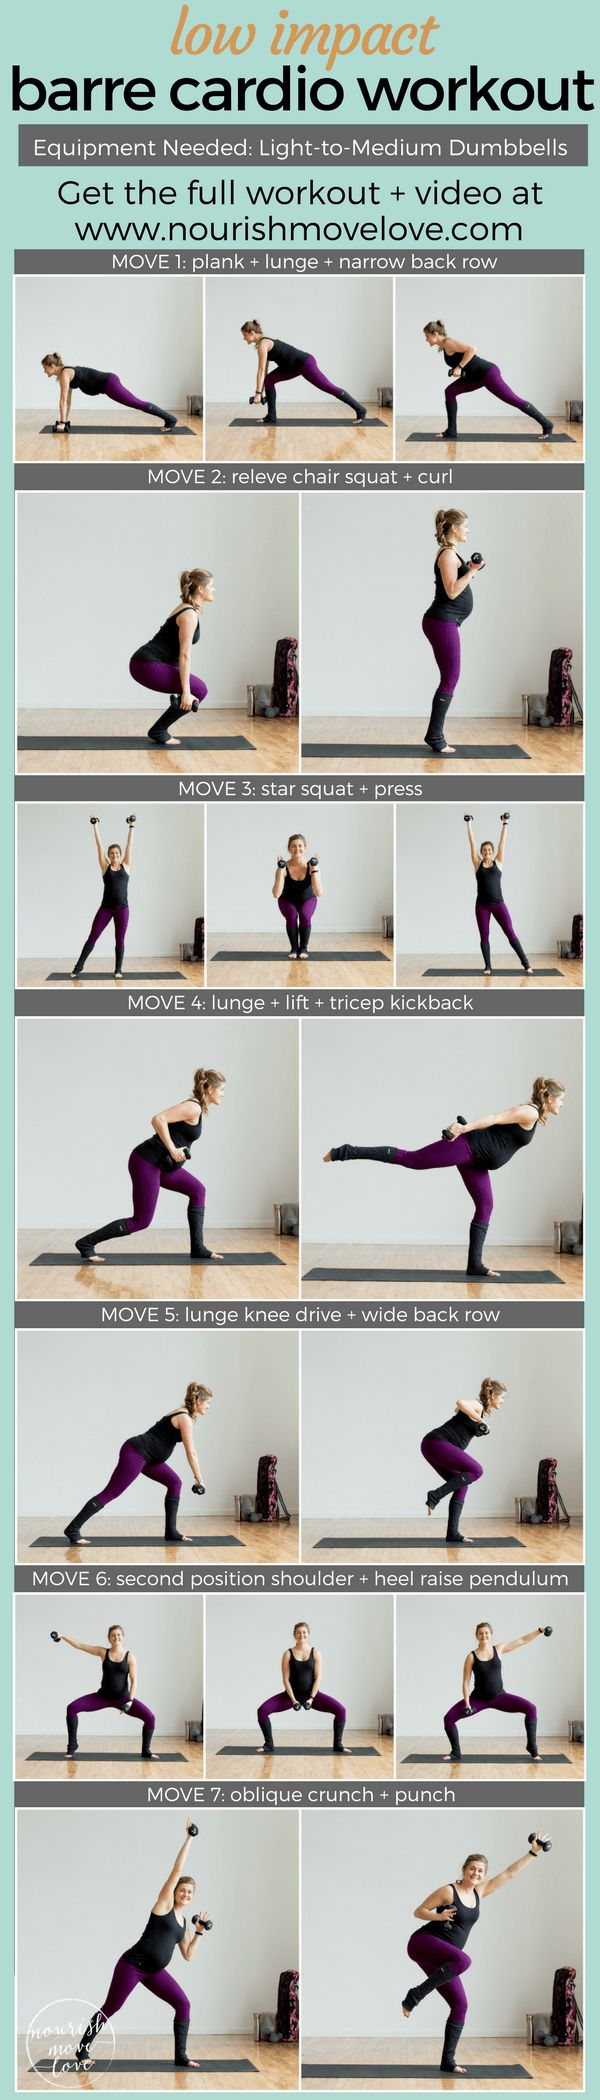 7 barre inspired exercises for a complete at home workout! Use light-to-medium dumbbells for this ballet inspired workout. Burn calories with these low impact but high intensity moves. Great for anyone with bad knees, runners who need an impact break, or for pregnant or new mom's getting back into a workout routine   www.nourishmovelove.com